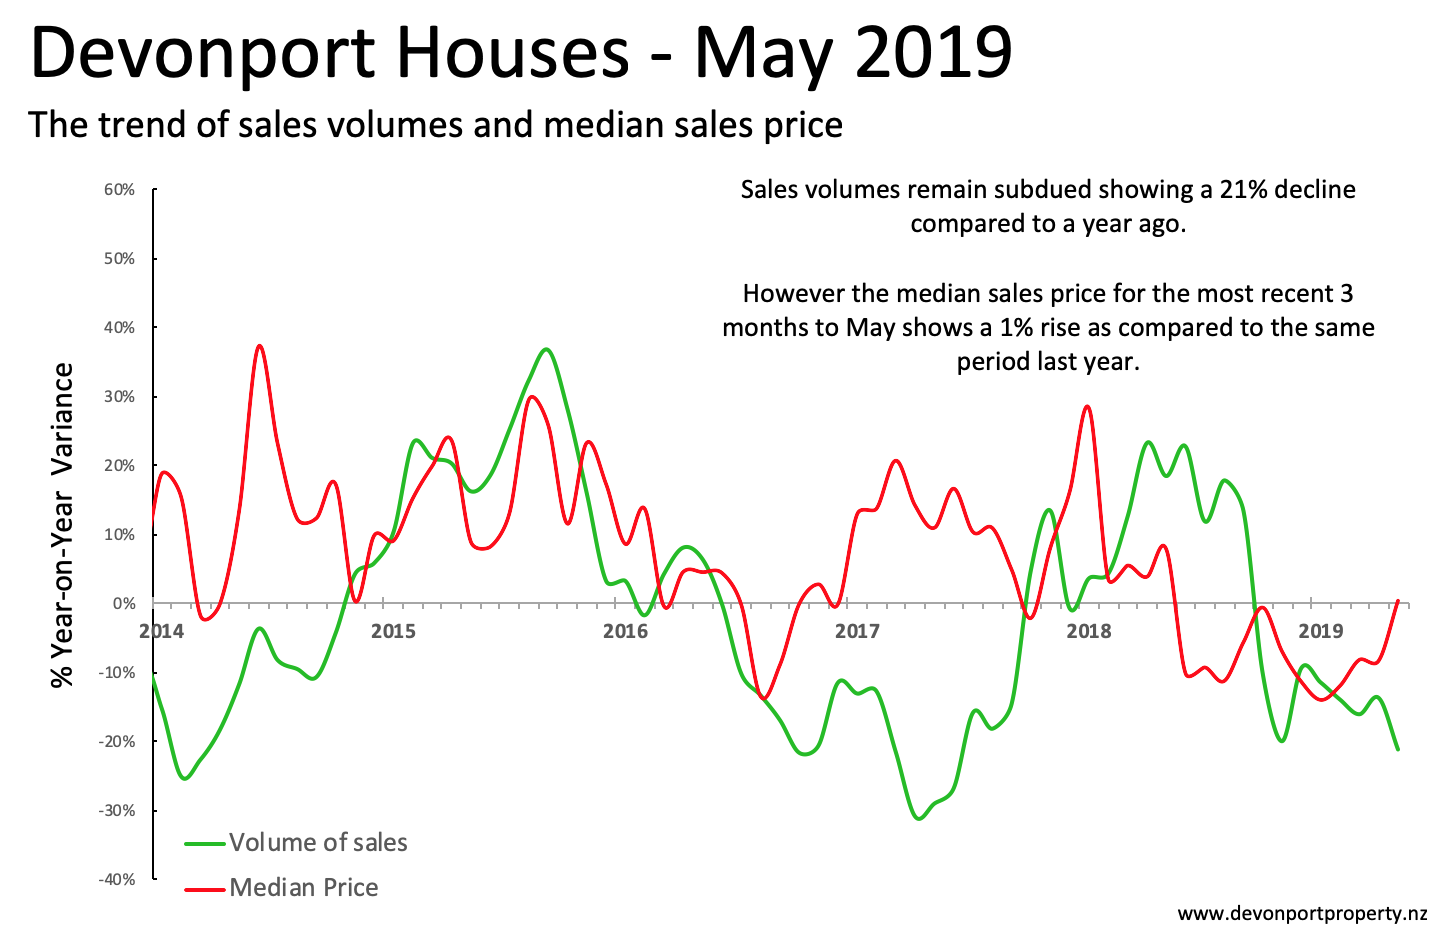 Devonport Property May 2019 Houses variance of sales and price 3MMA.png